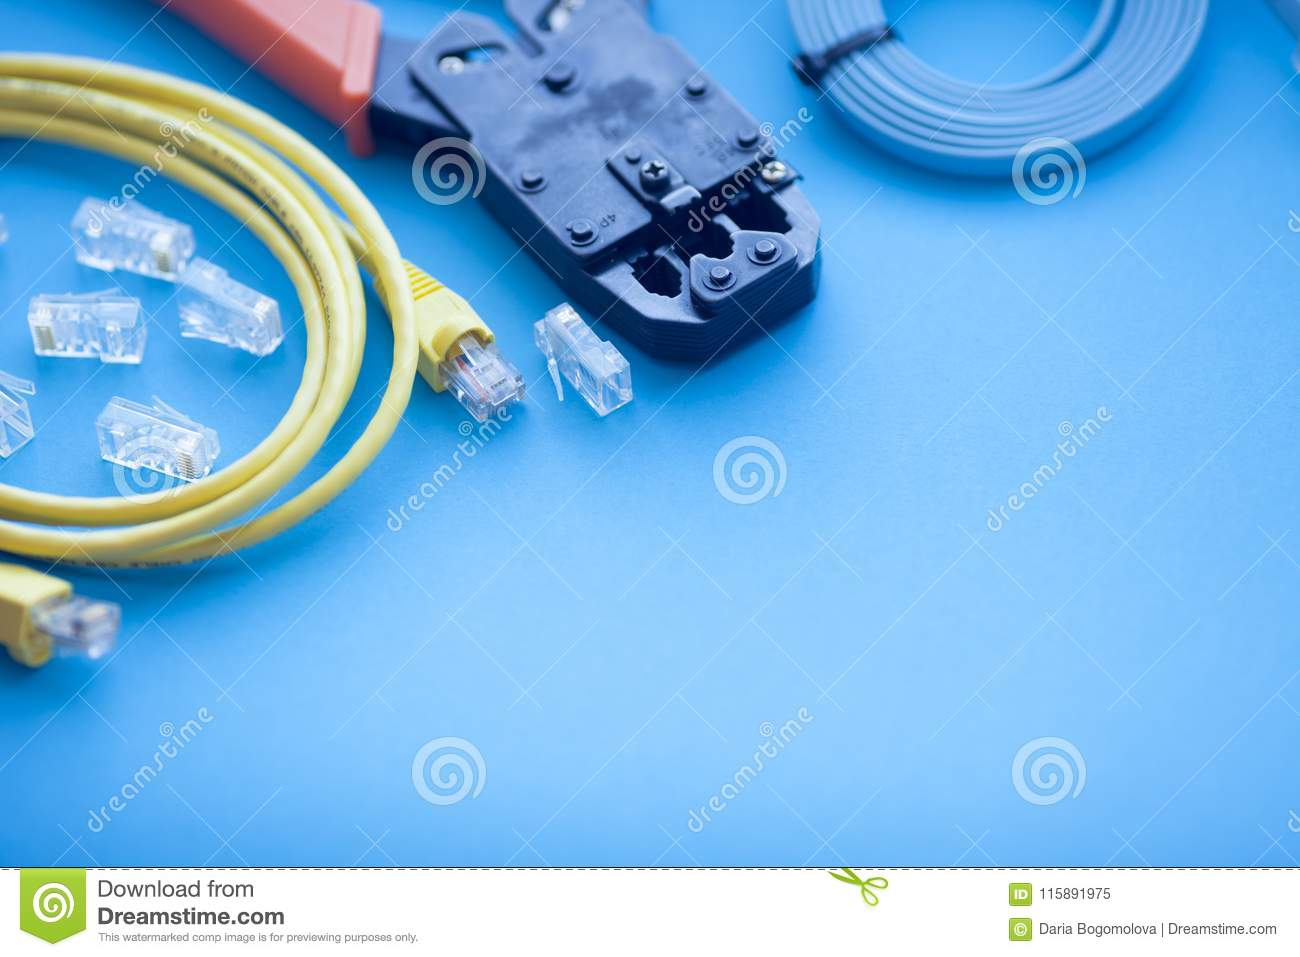 SKS And Engineering Concept Set Of Connectors, Ethernet And